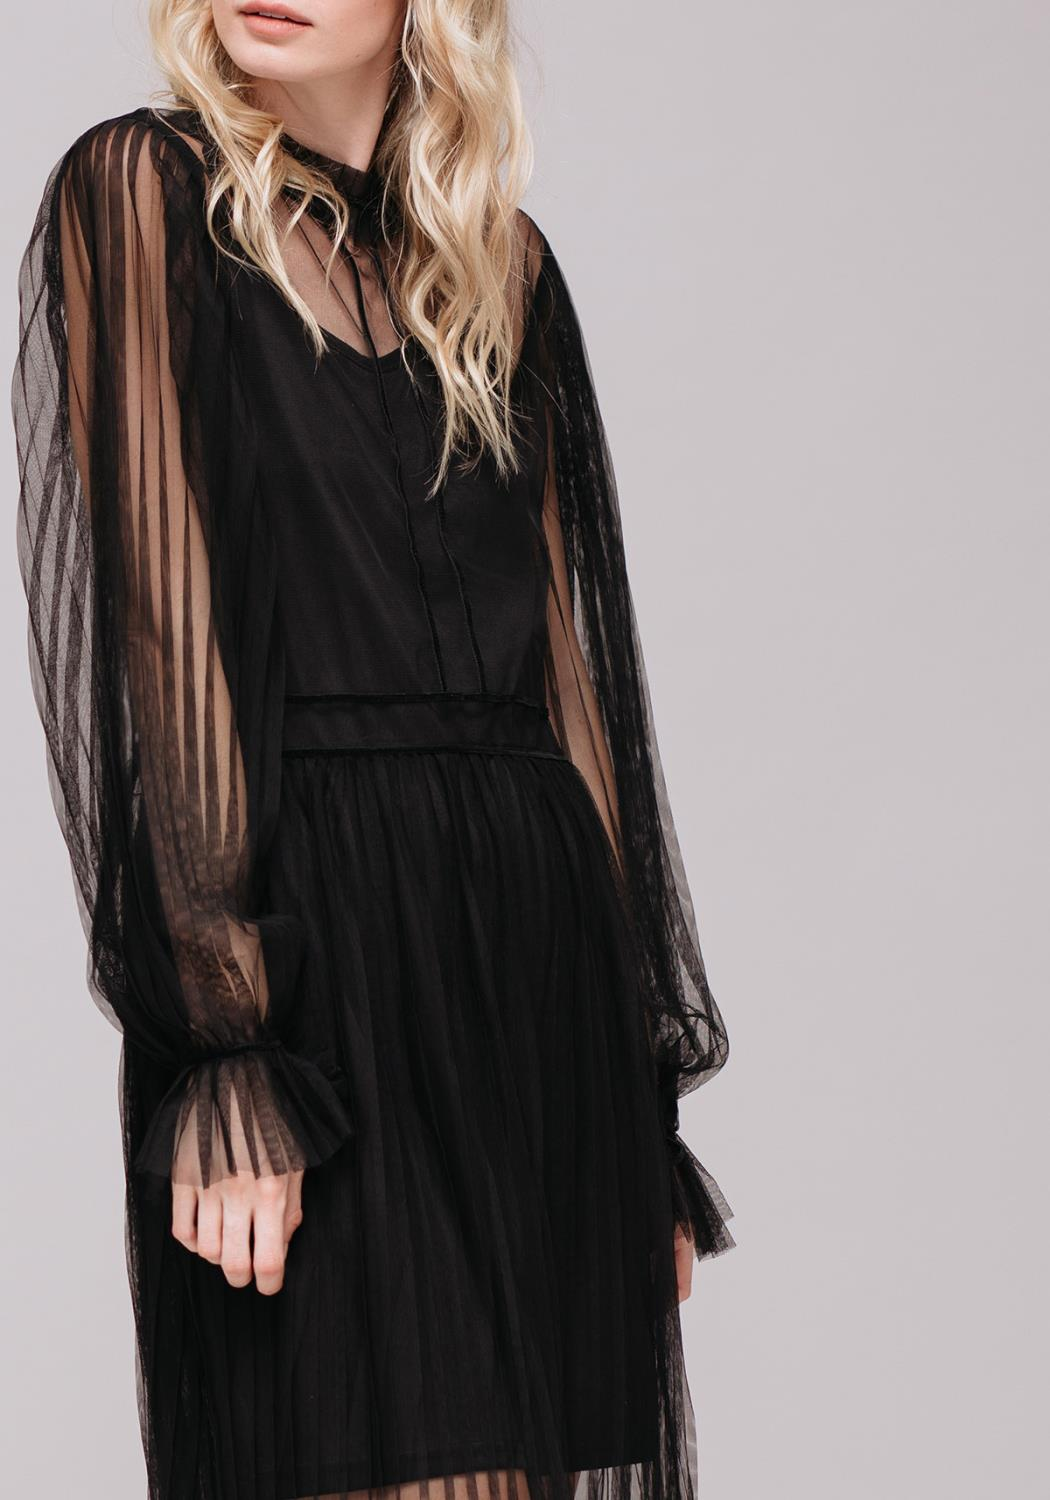 Sheer Tier Long Sleeve Party Dress